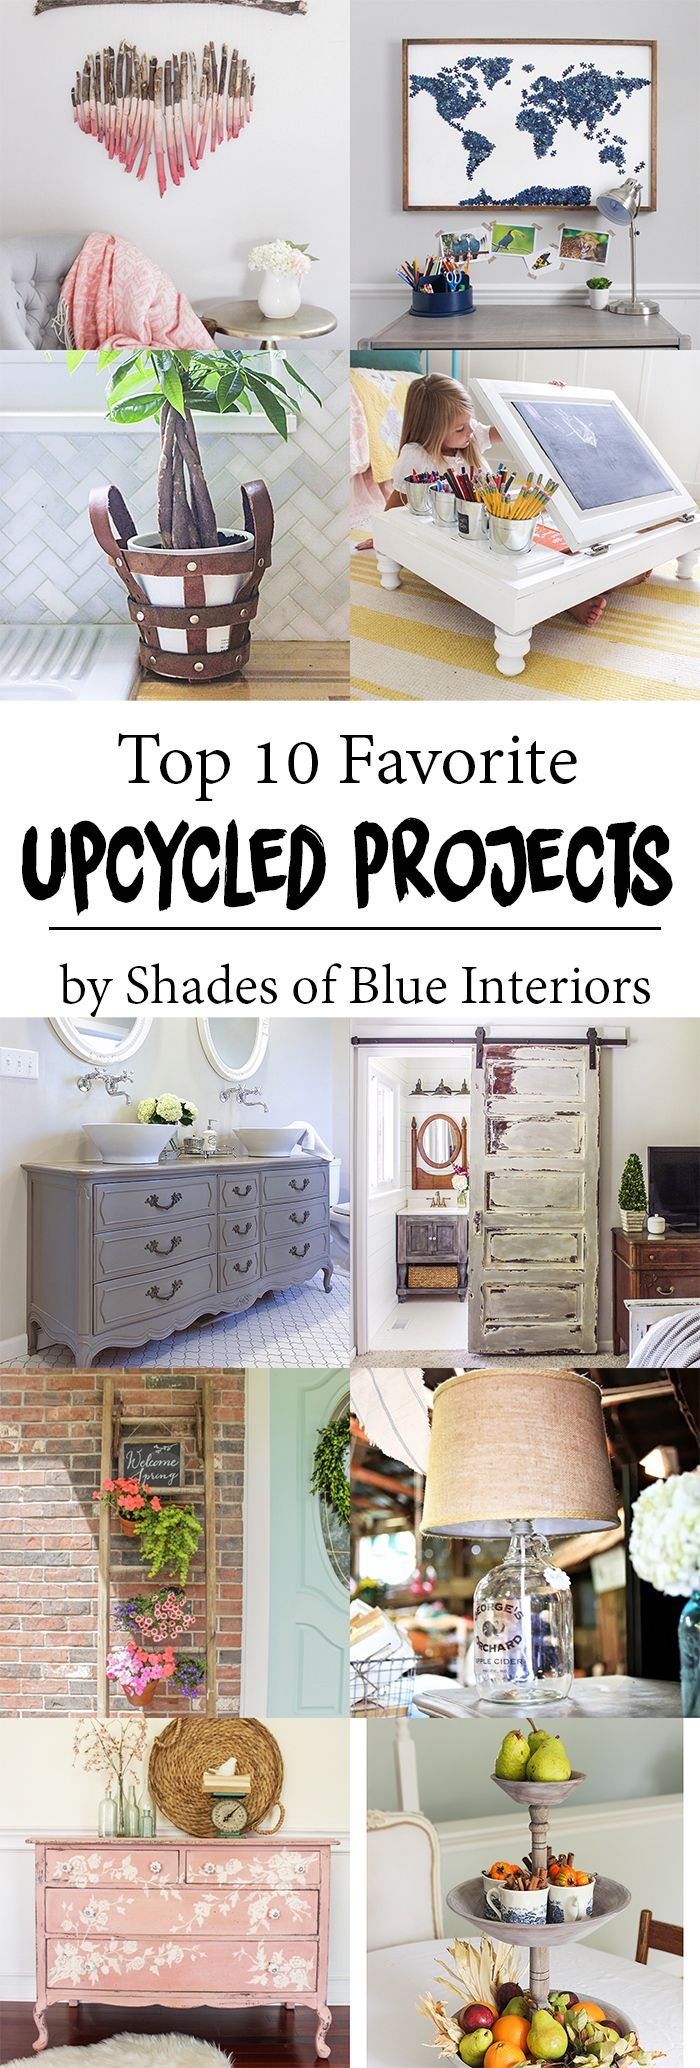 999 best images about repurpose it on pinterest old for Best upcycled projects